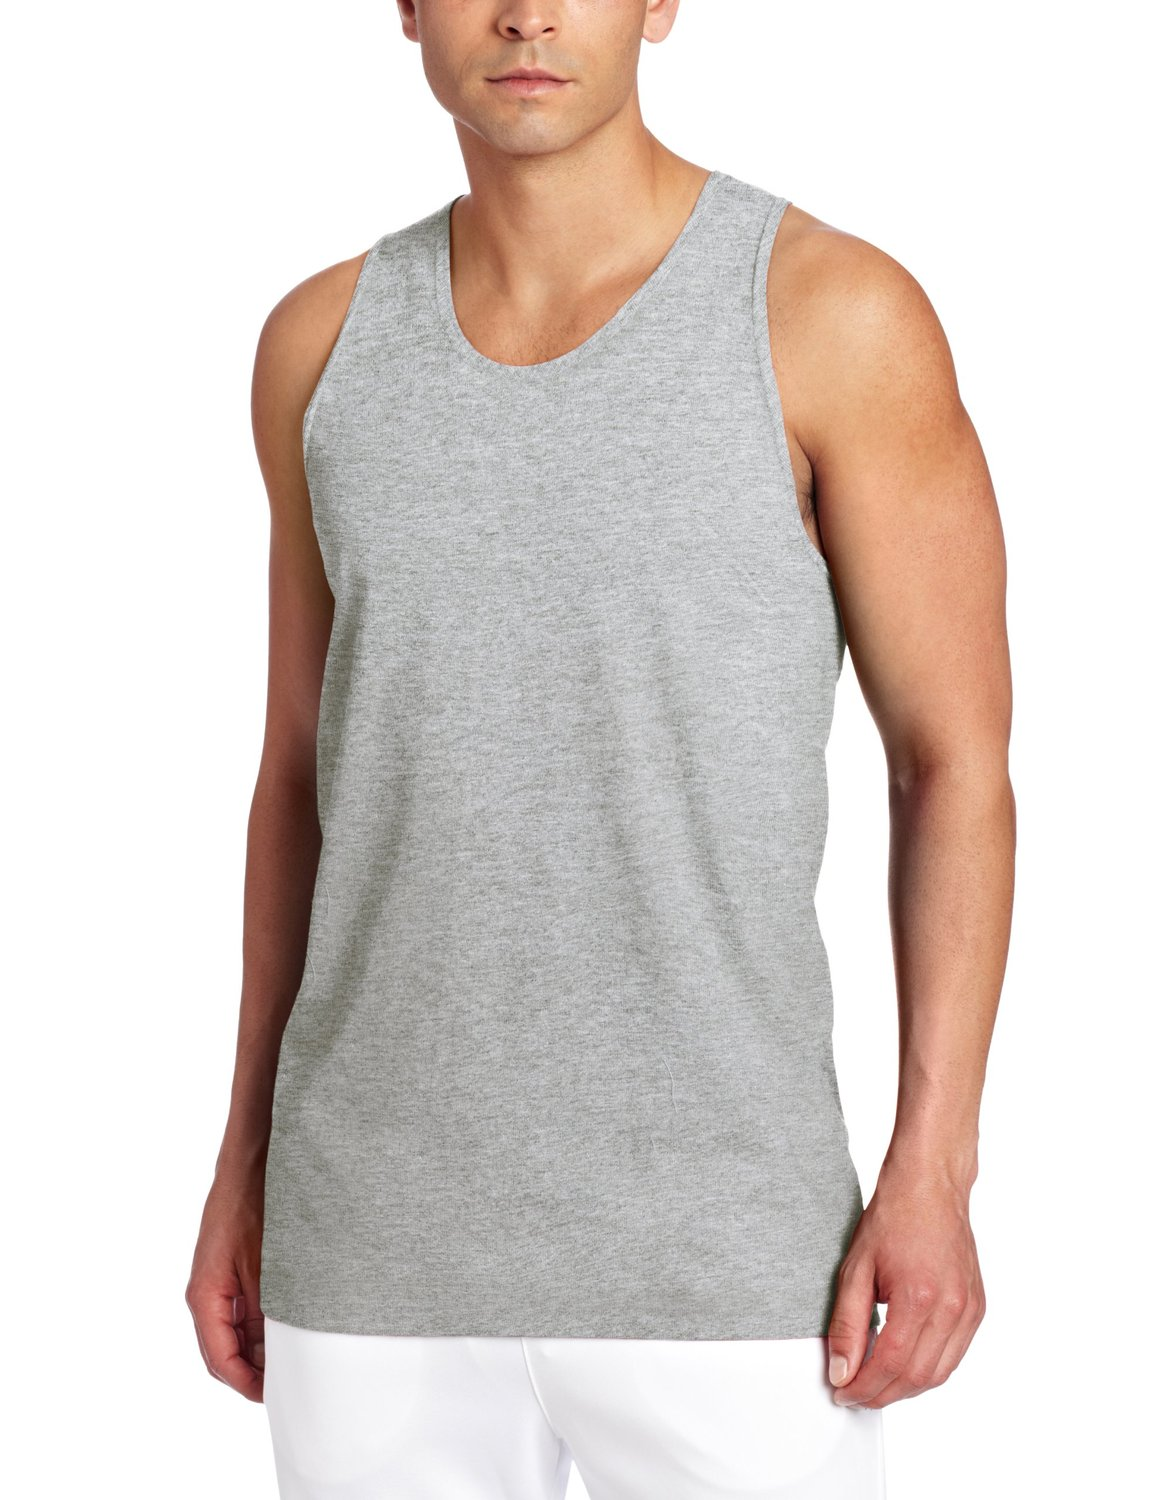 3a04a1a27bdaa Russell Athletic Men s Basic Cotton Tank